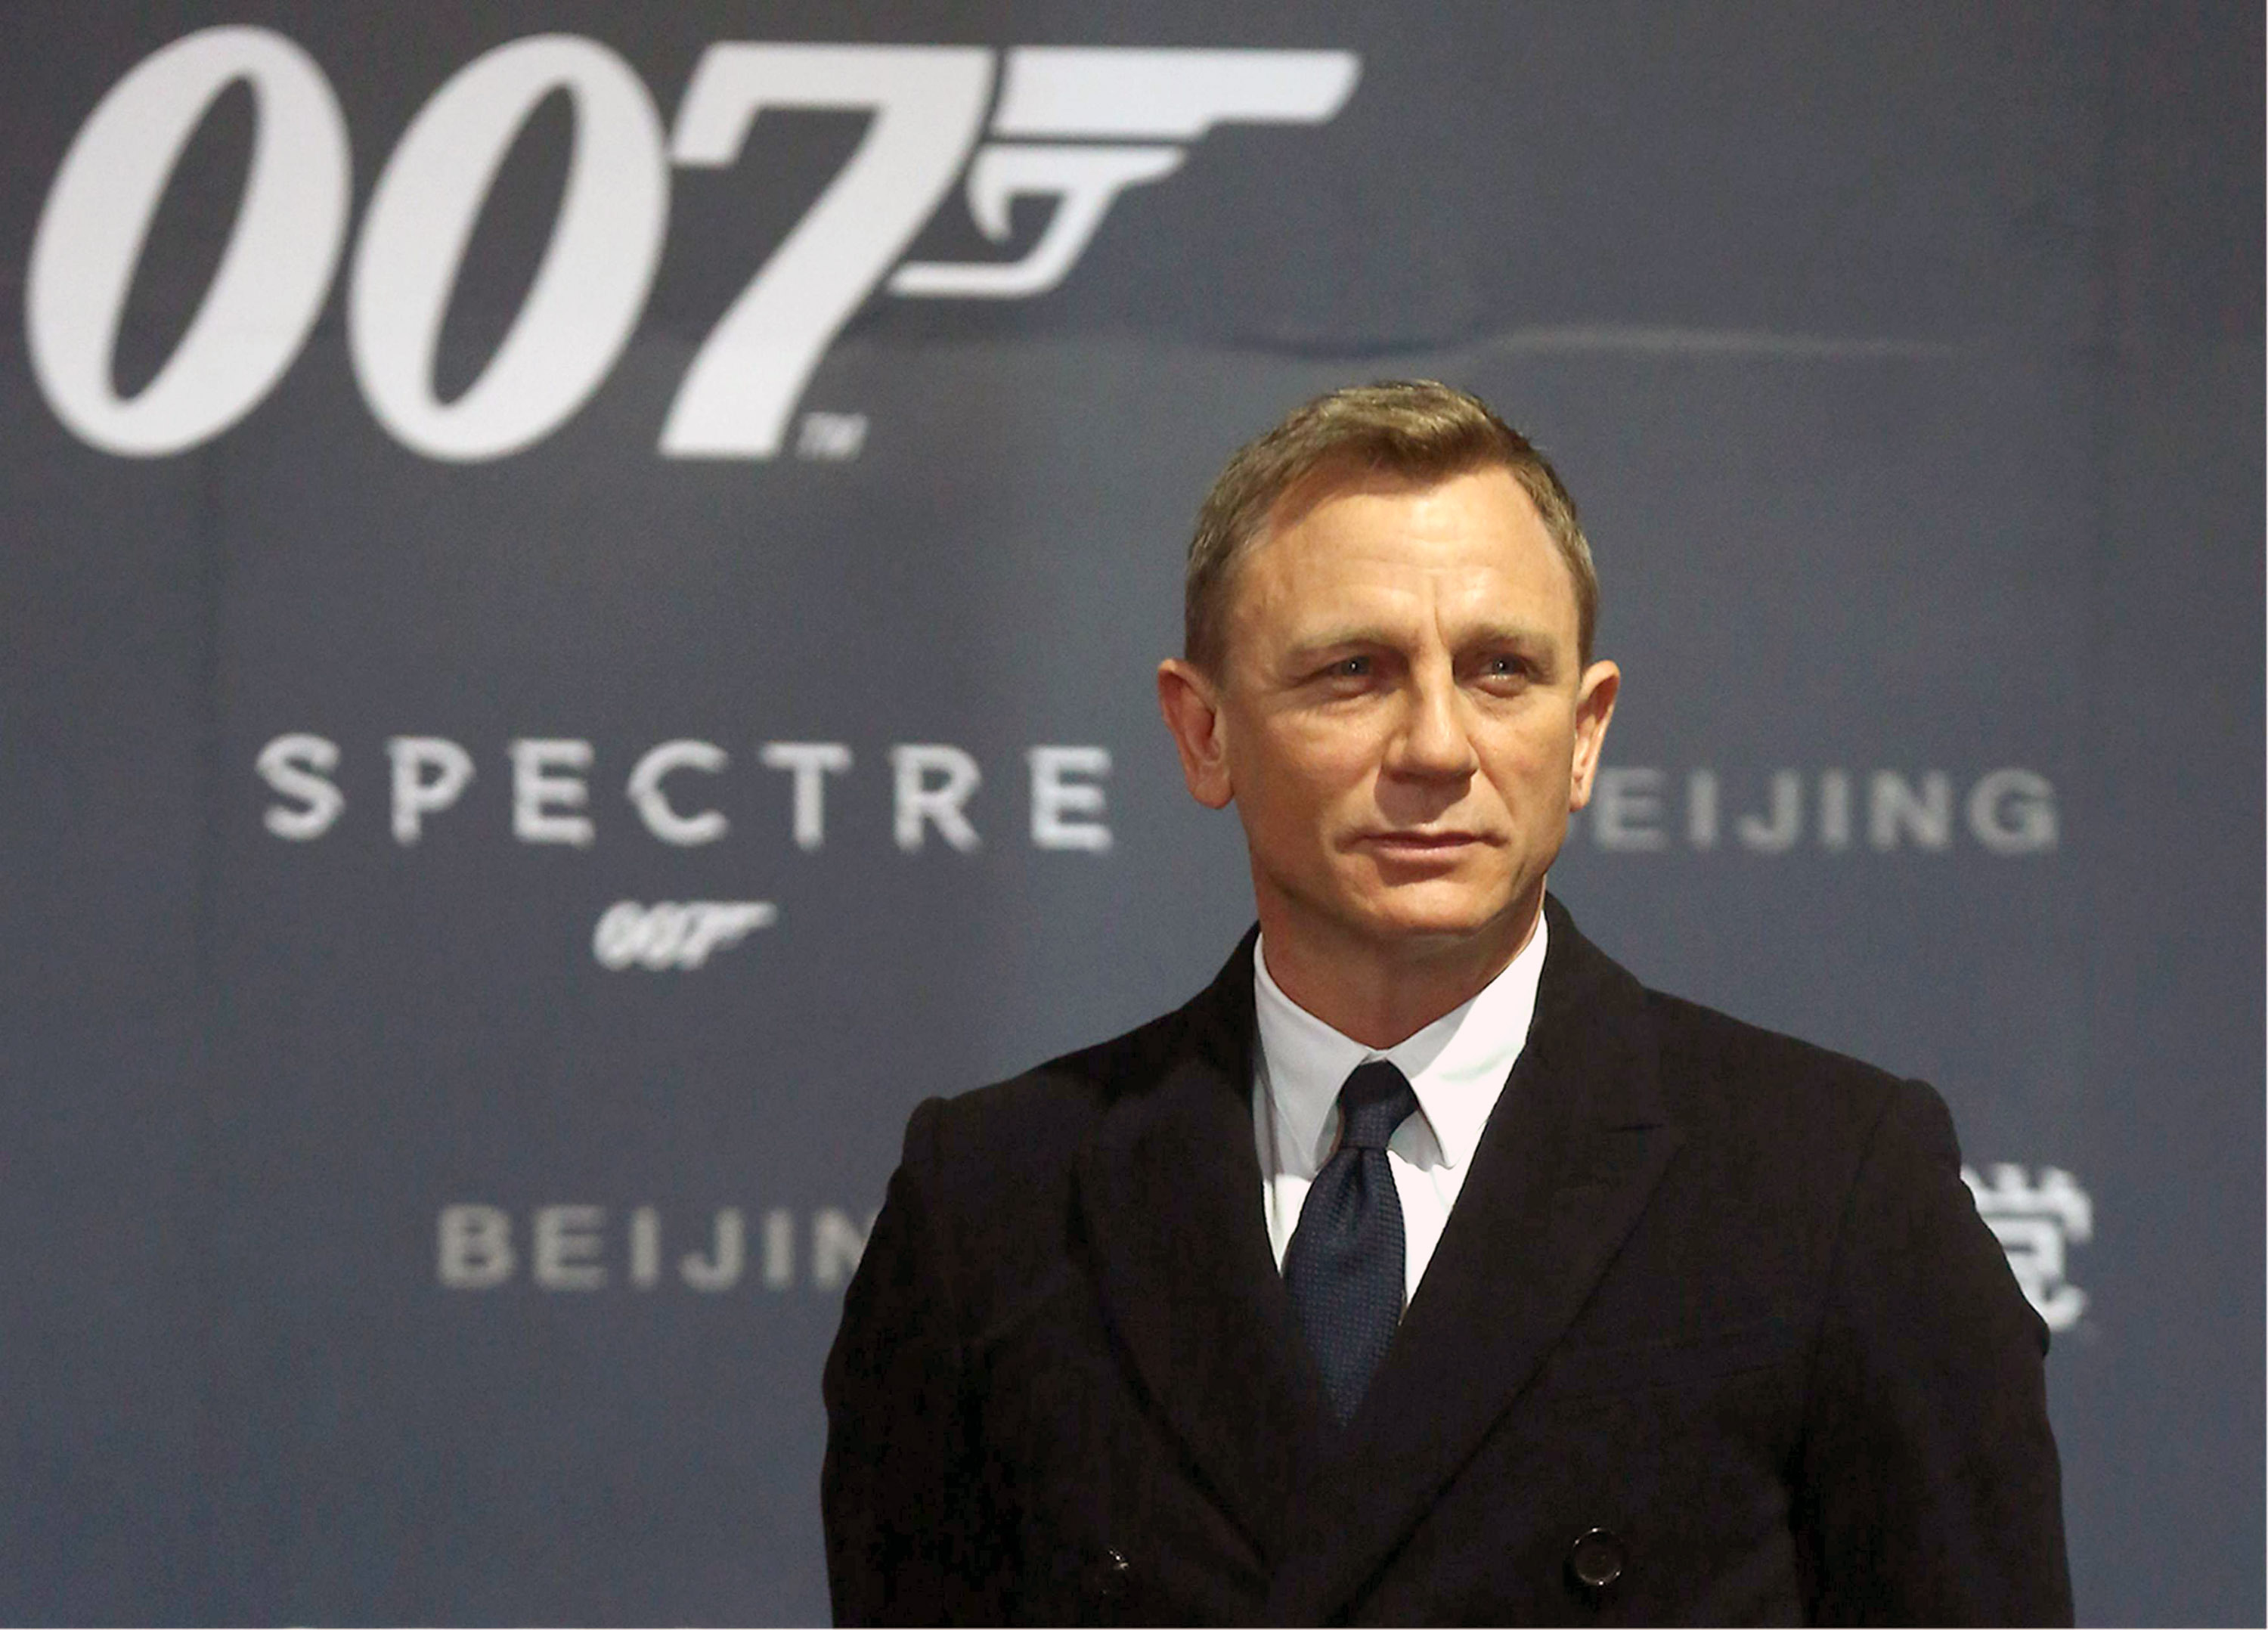 Actor Daniel Craig attends 'Spectre' premiere at The Place on November 12, 2015 in Beijing, China.